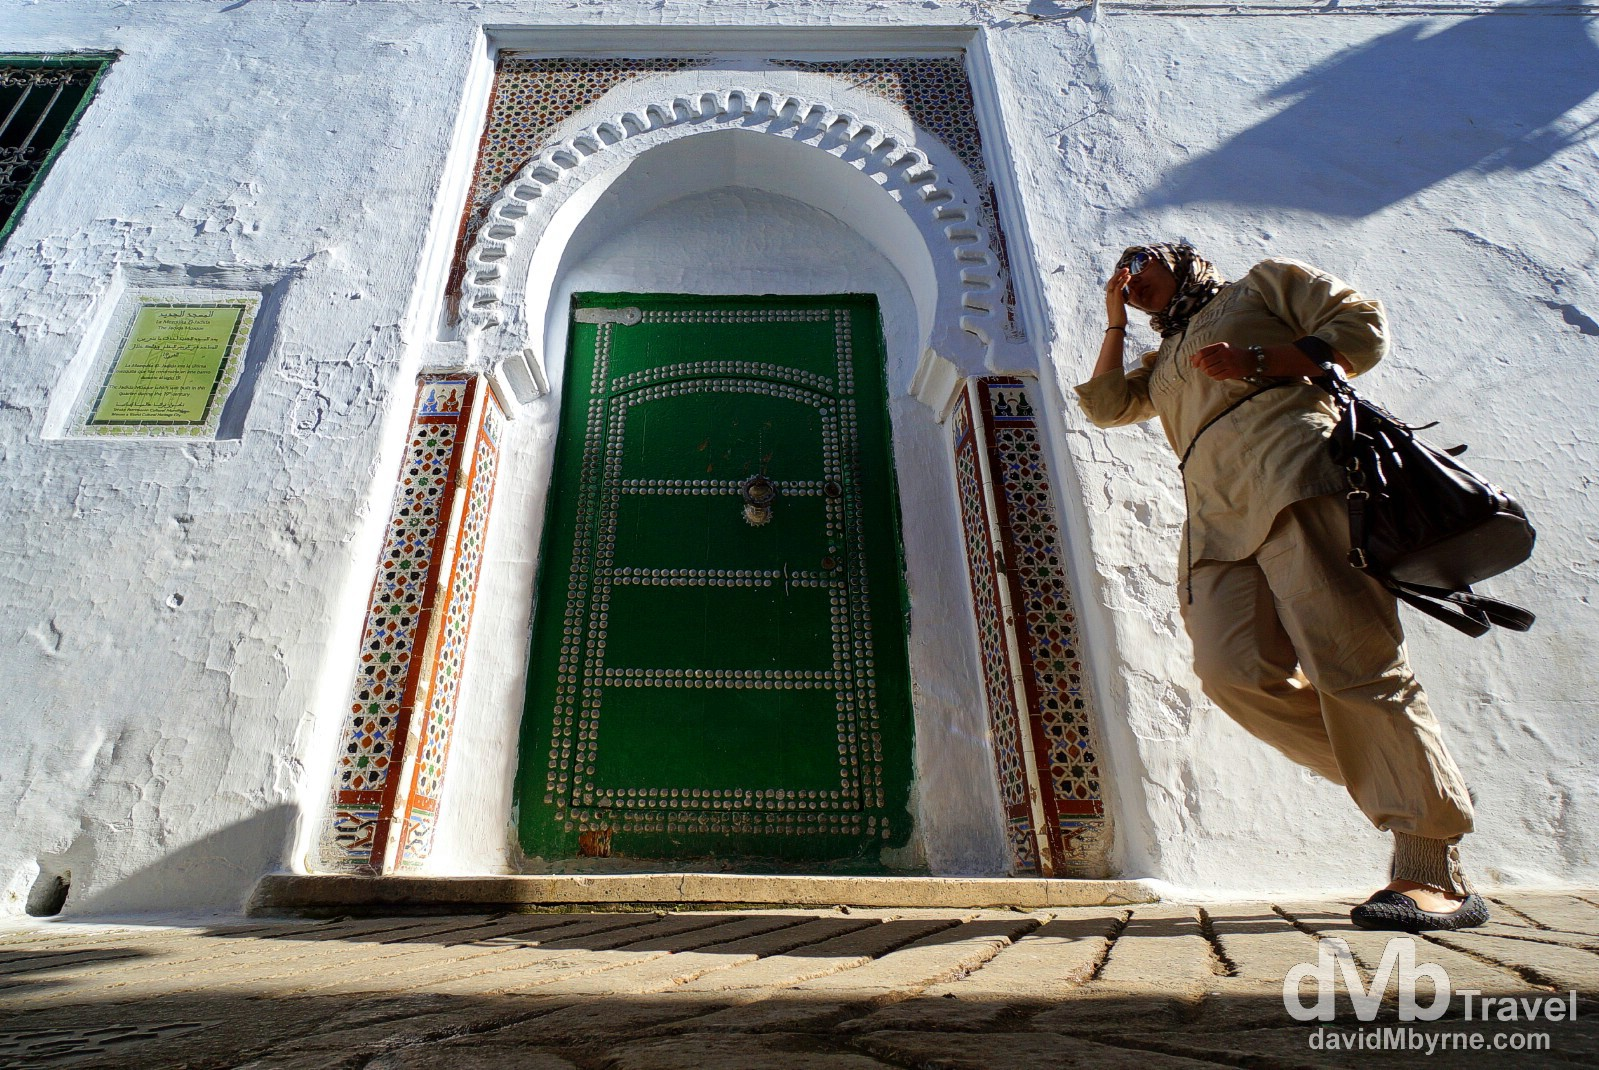 Walking by an entrance to the Jadid Mosque inside the walls of the UNESCO-listed medina in Teotuan, Morocco. June 2nd, 2014.